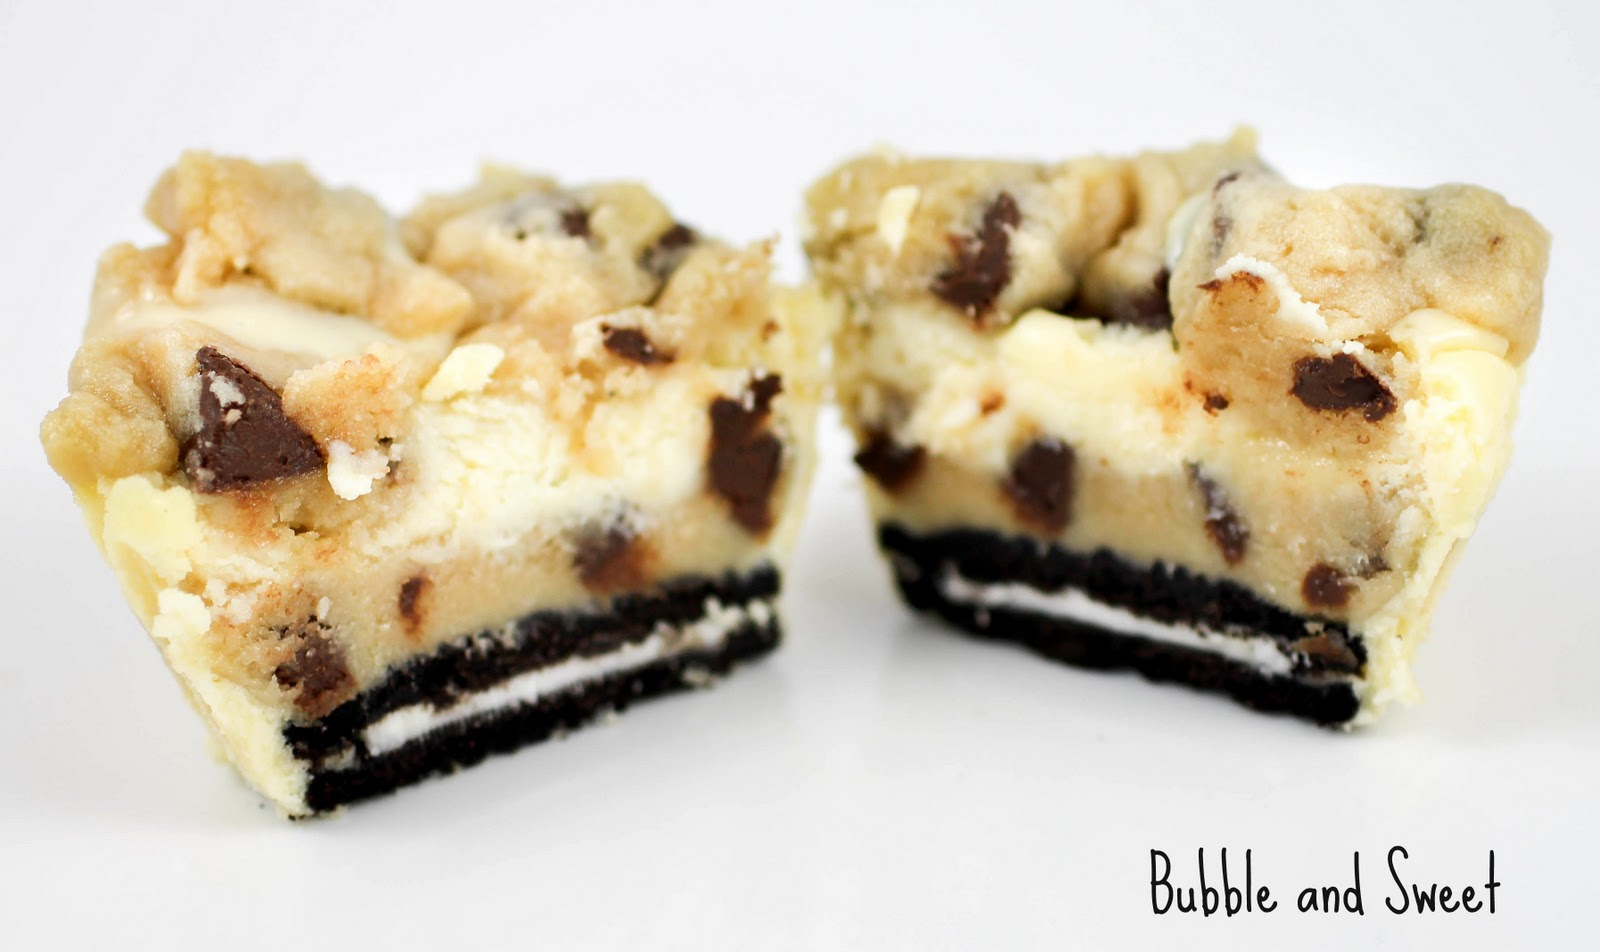 Bubble and Sweet: Chocolate Chip cookie dough cheesecakes